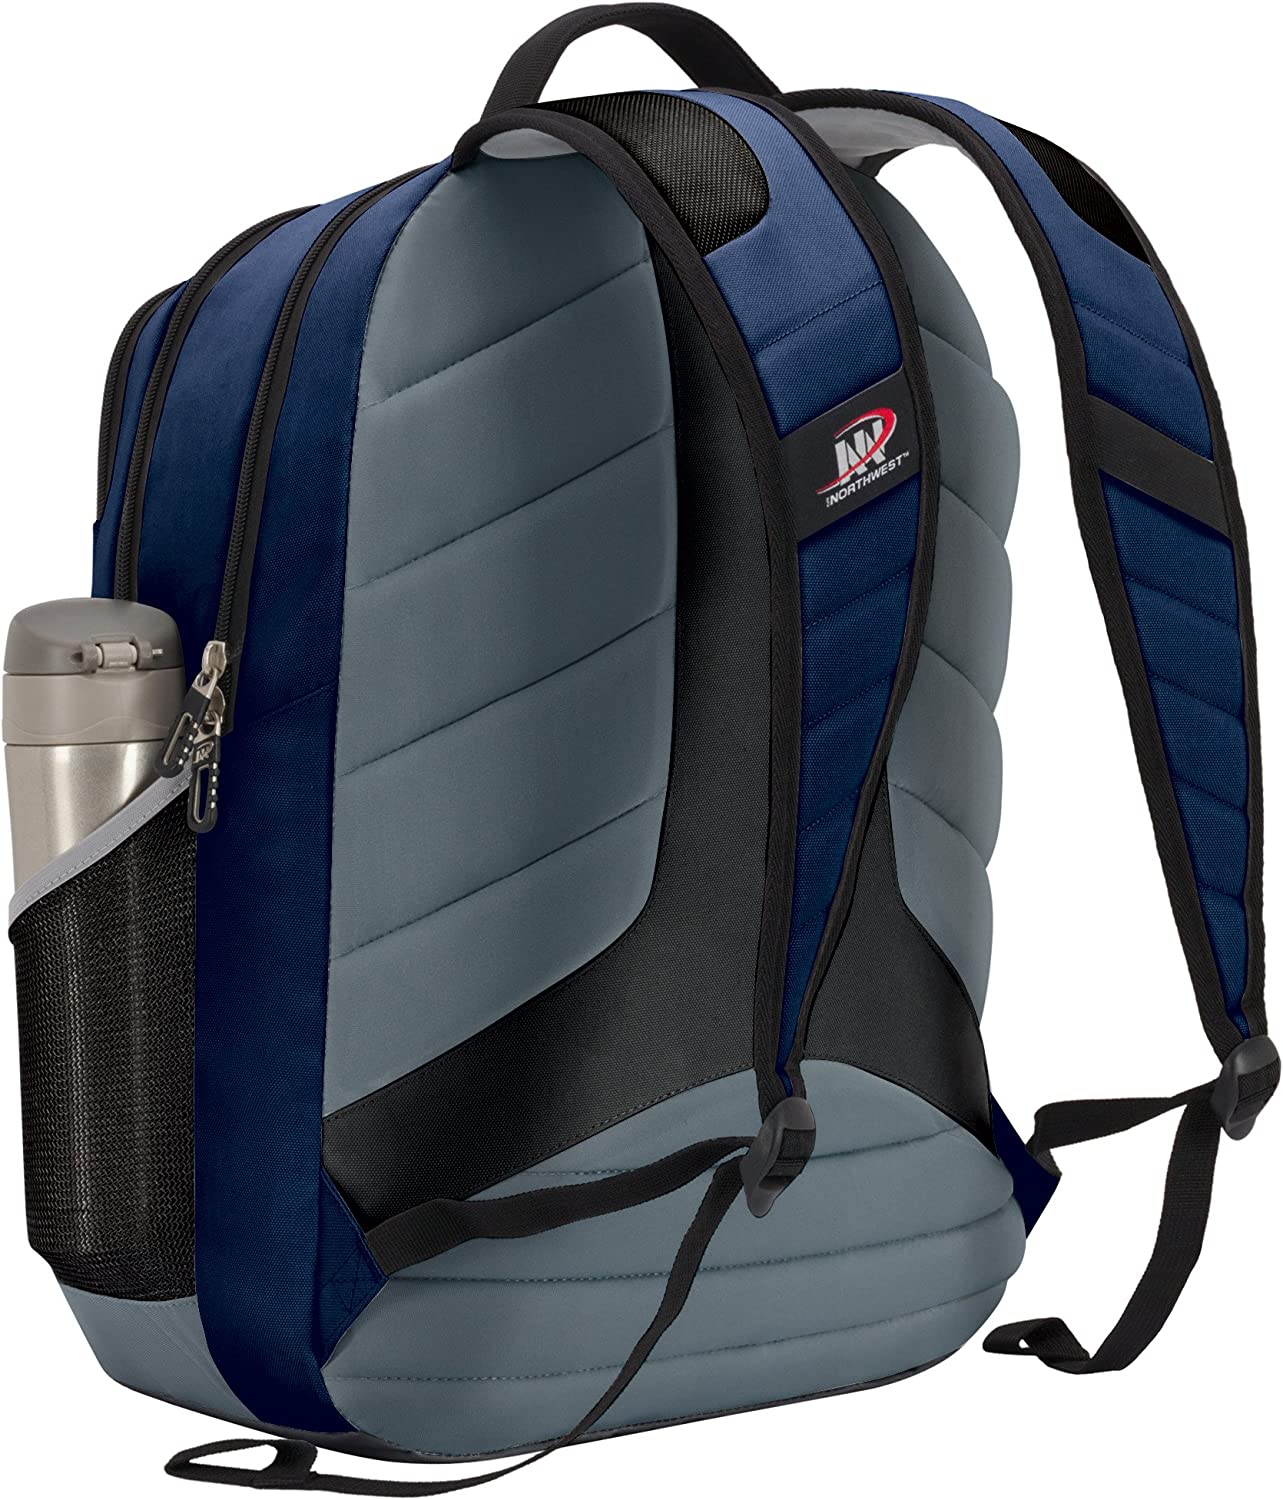 The Northwest Company Personnel Backpack